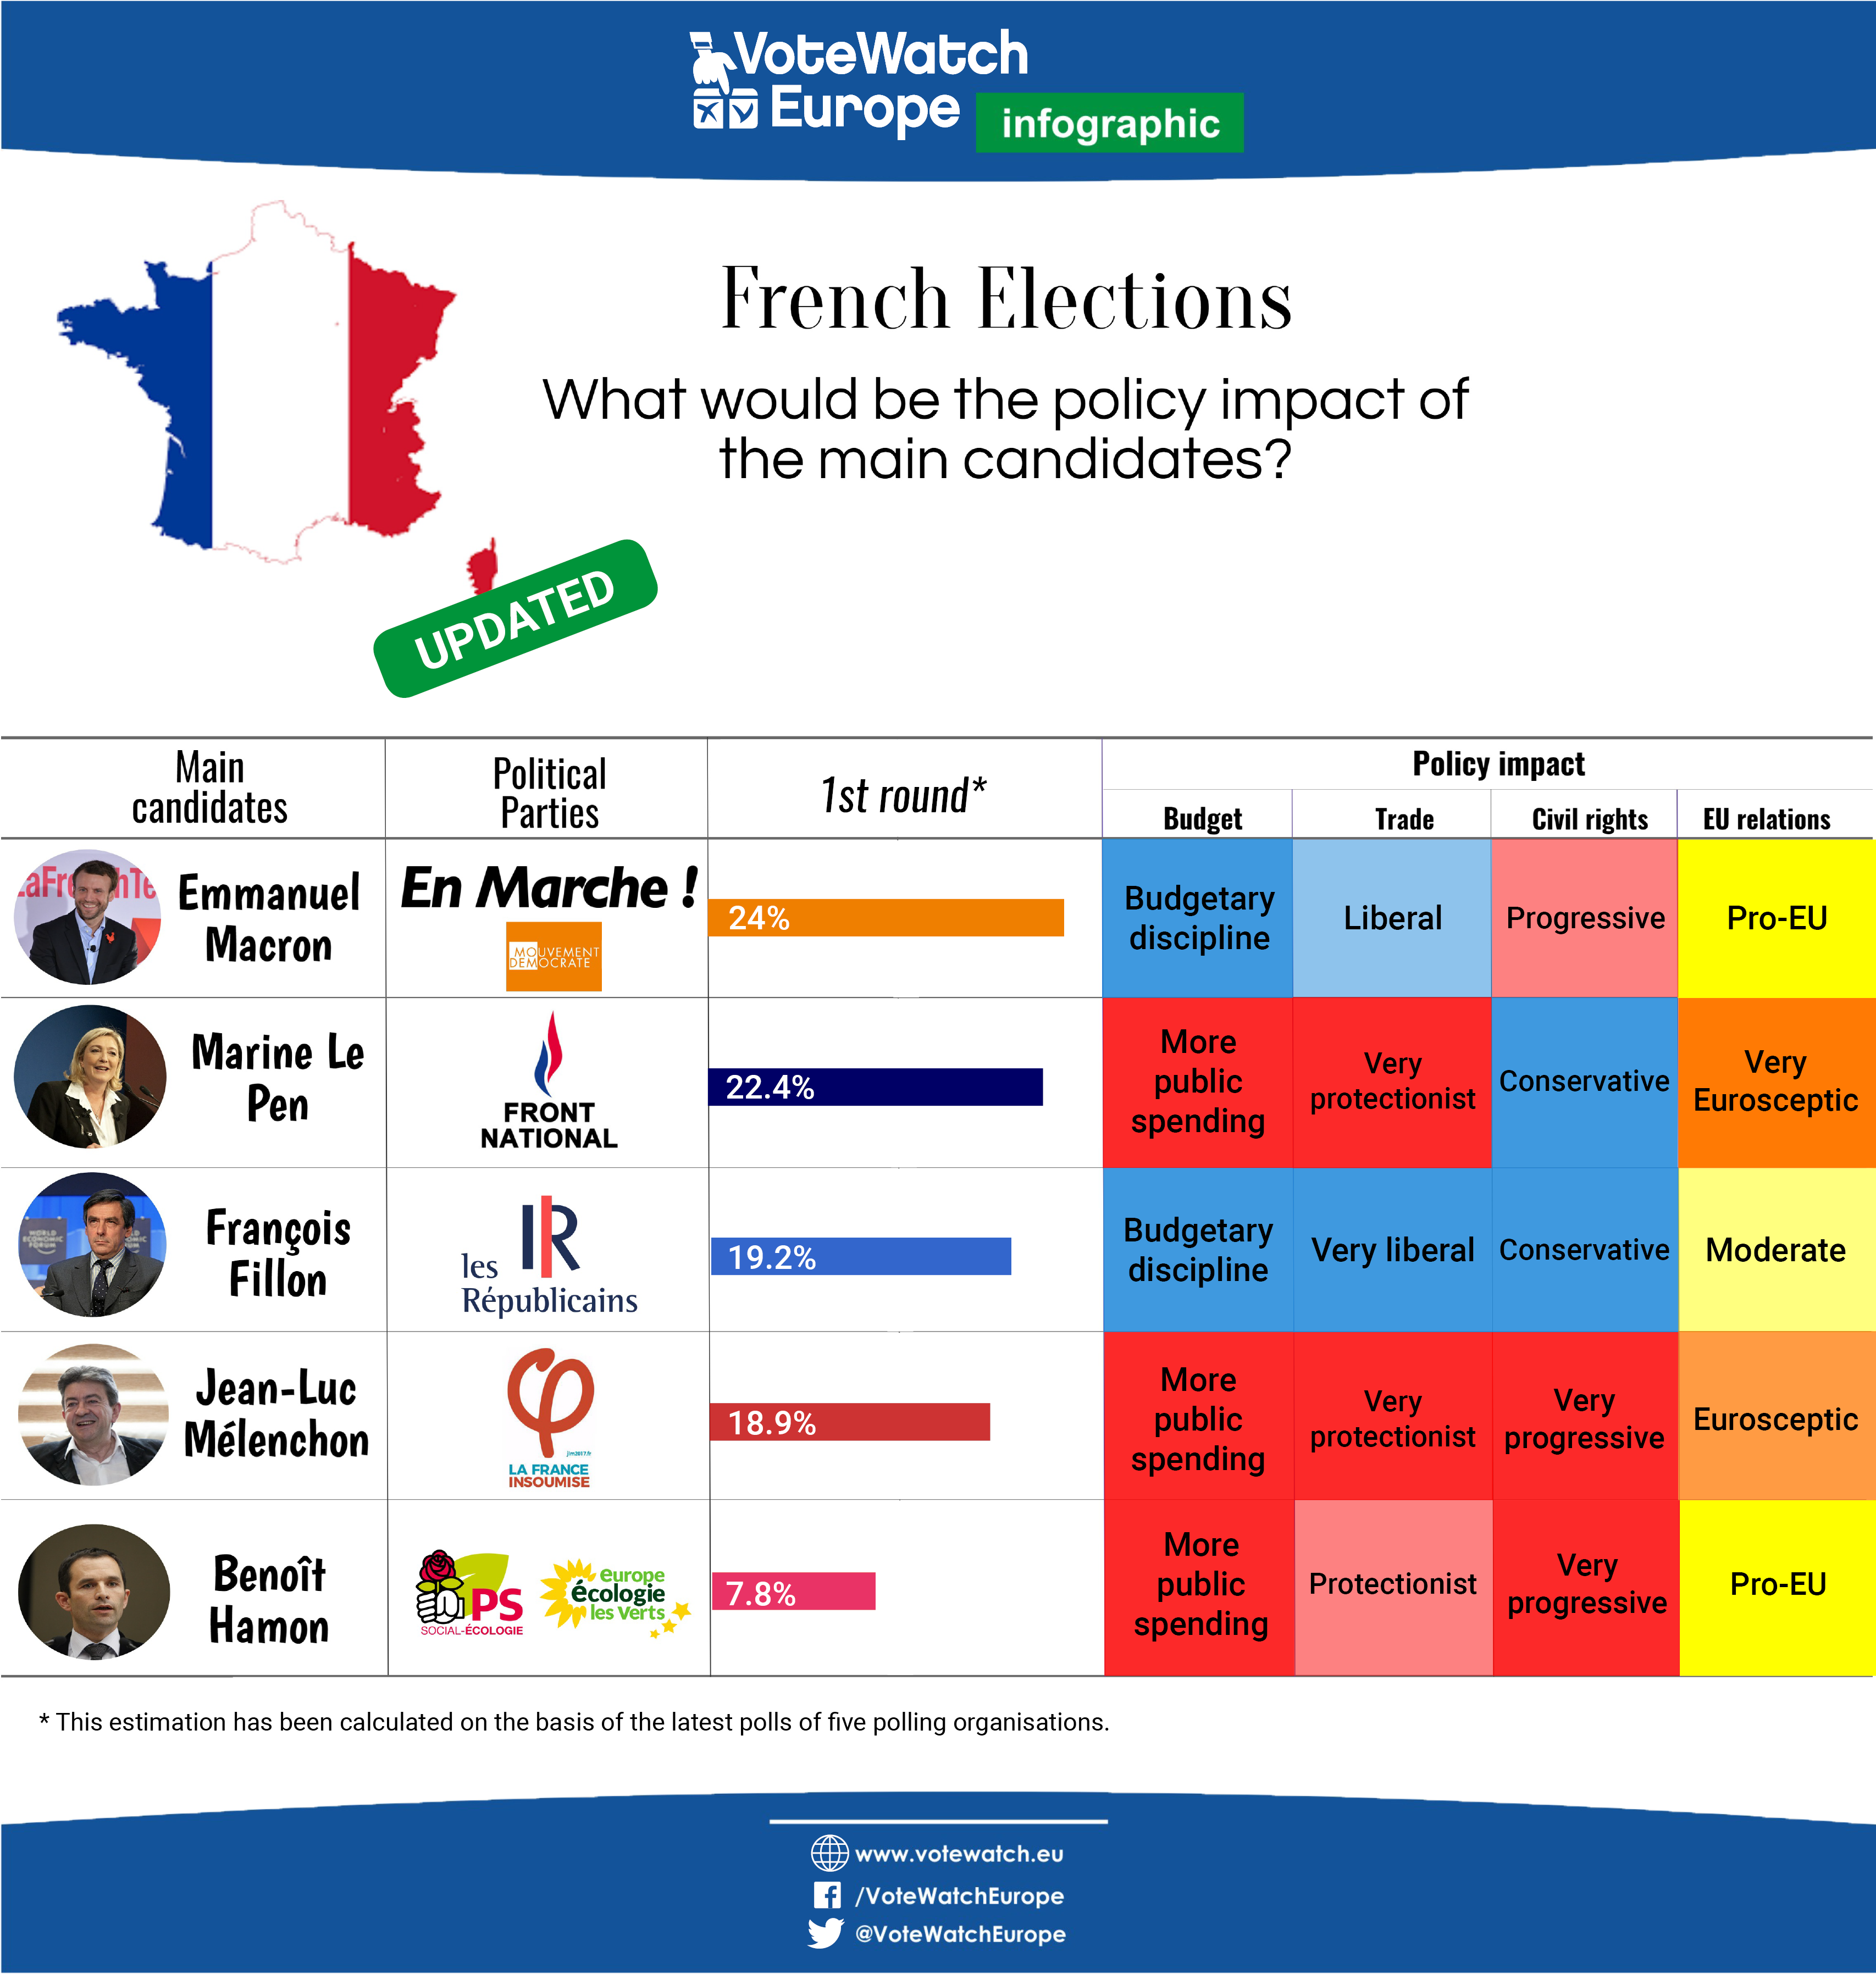 french election policy impacts [2 updated]